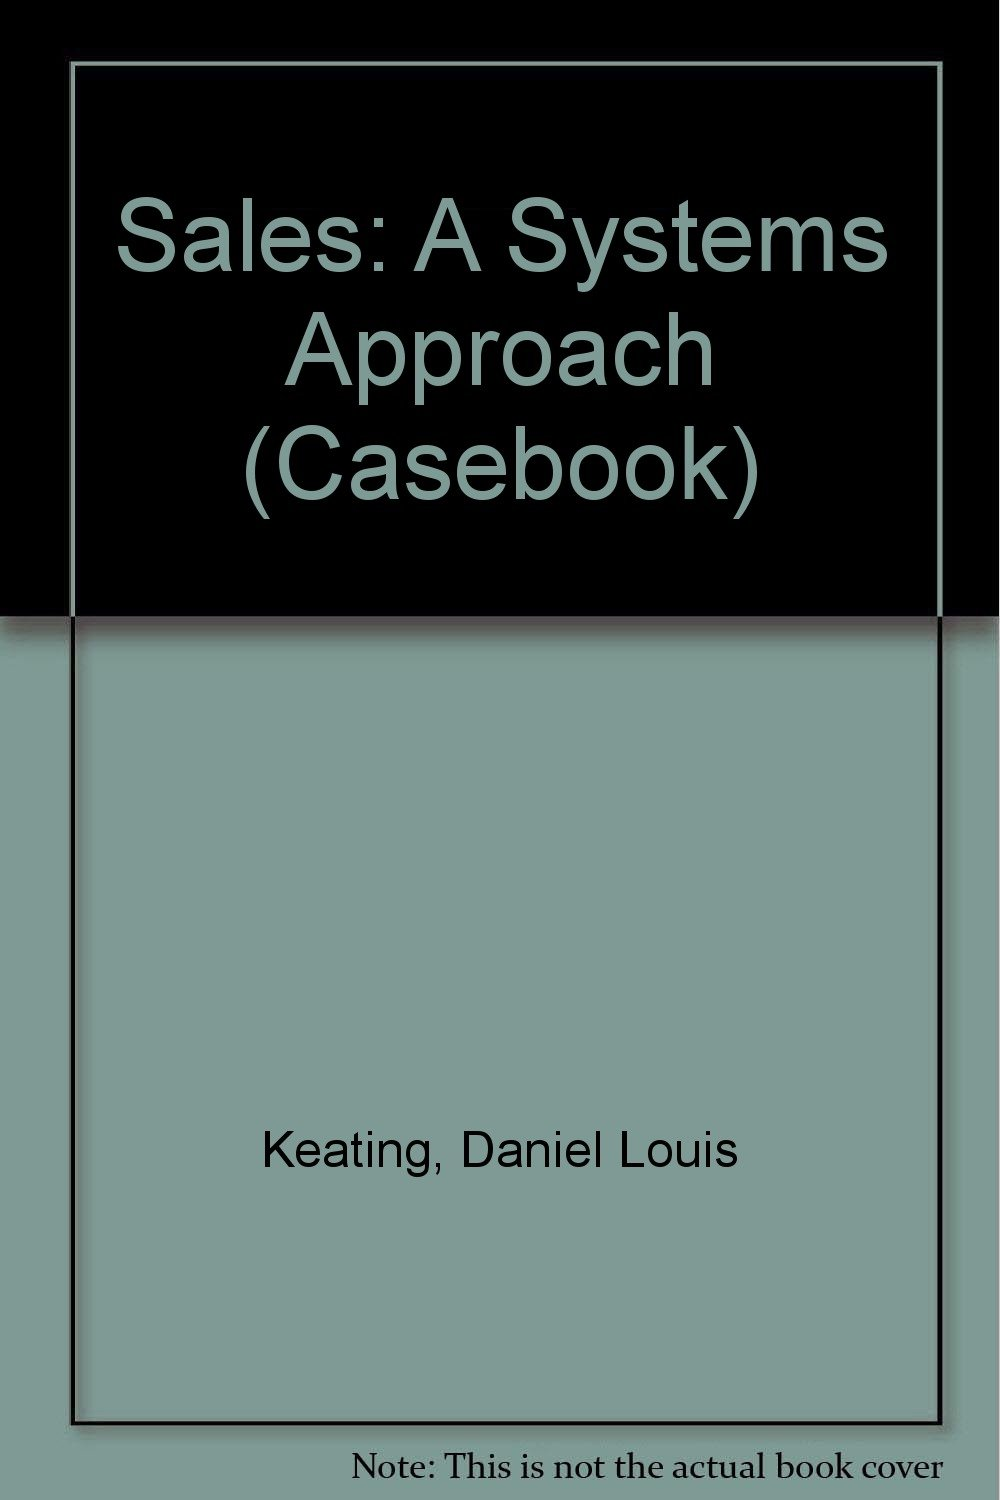 Sales: A Systems Approach (Casebook)